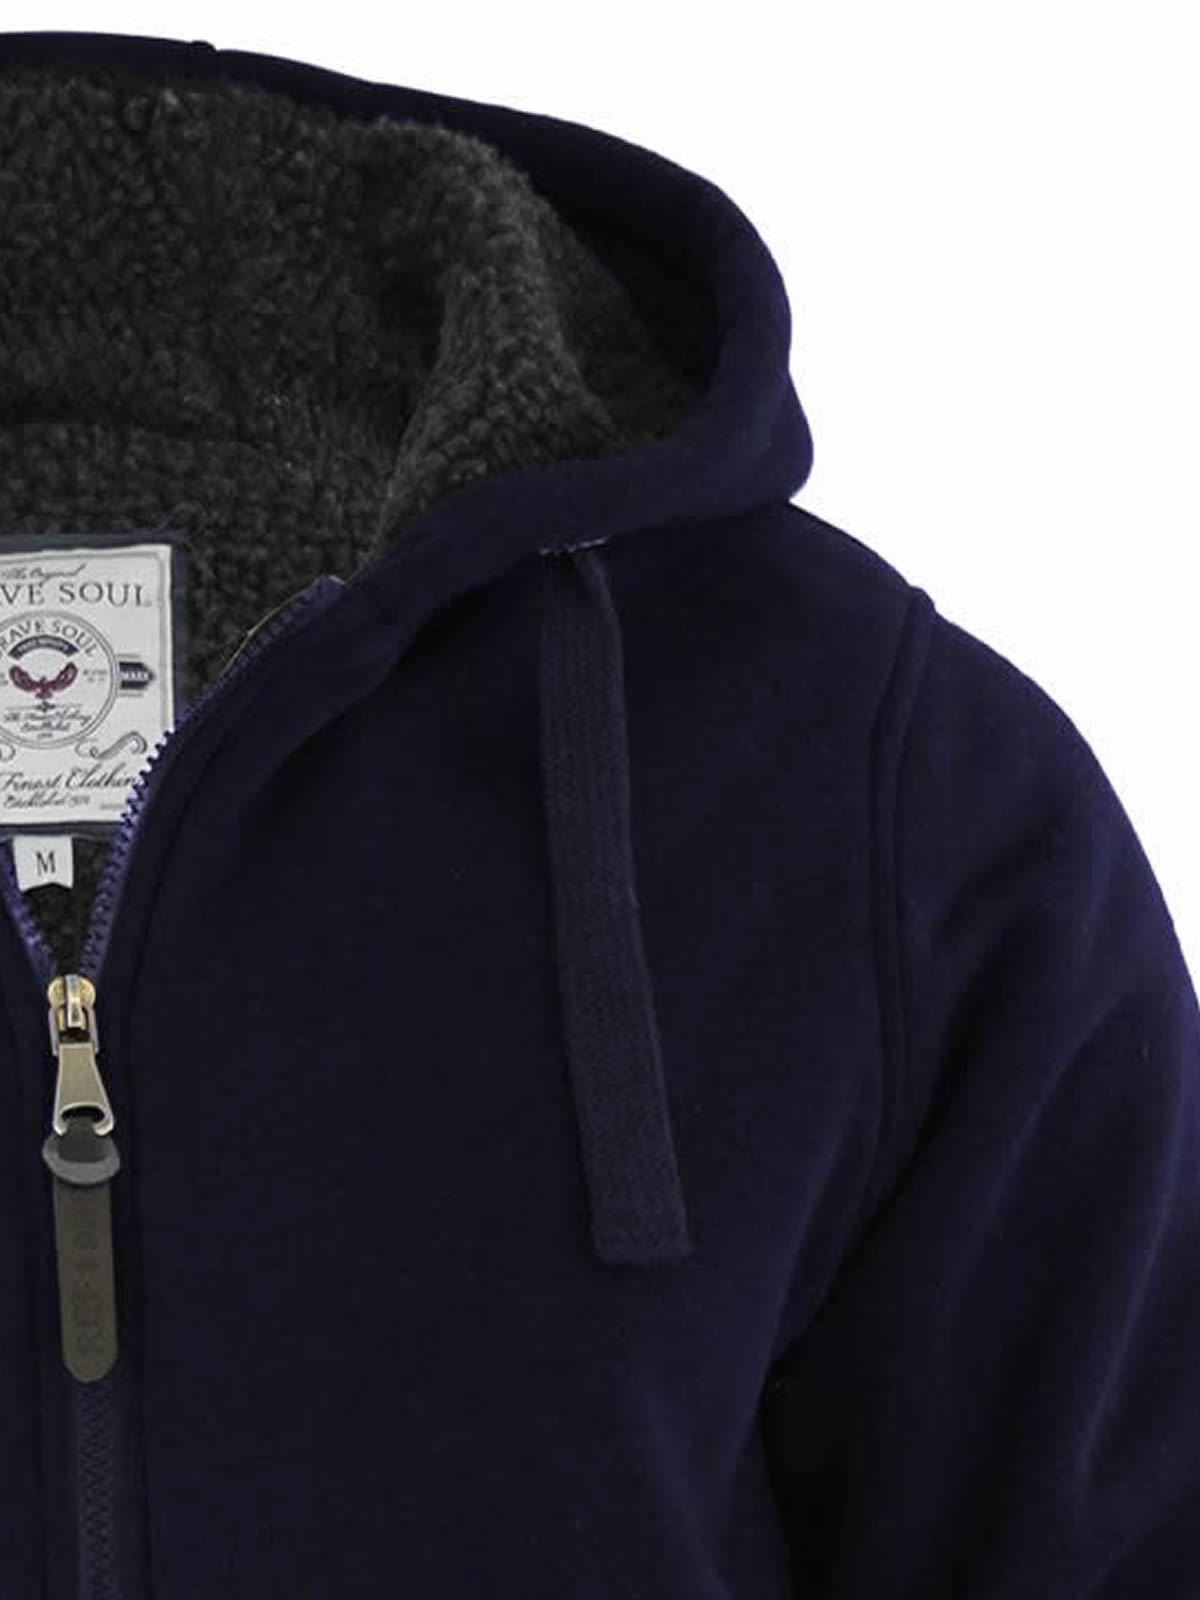 Mens-Hoodie-Brave-Soul-Zone-Sherpa-Fleece-Lined-Zip-Up-Hooded-Sweater thumbnail 7